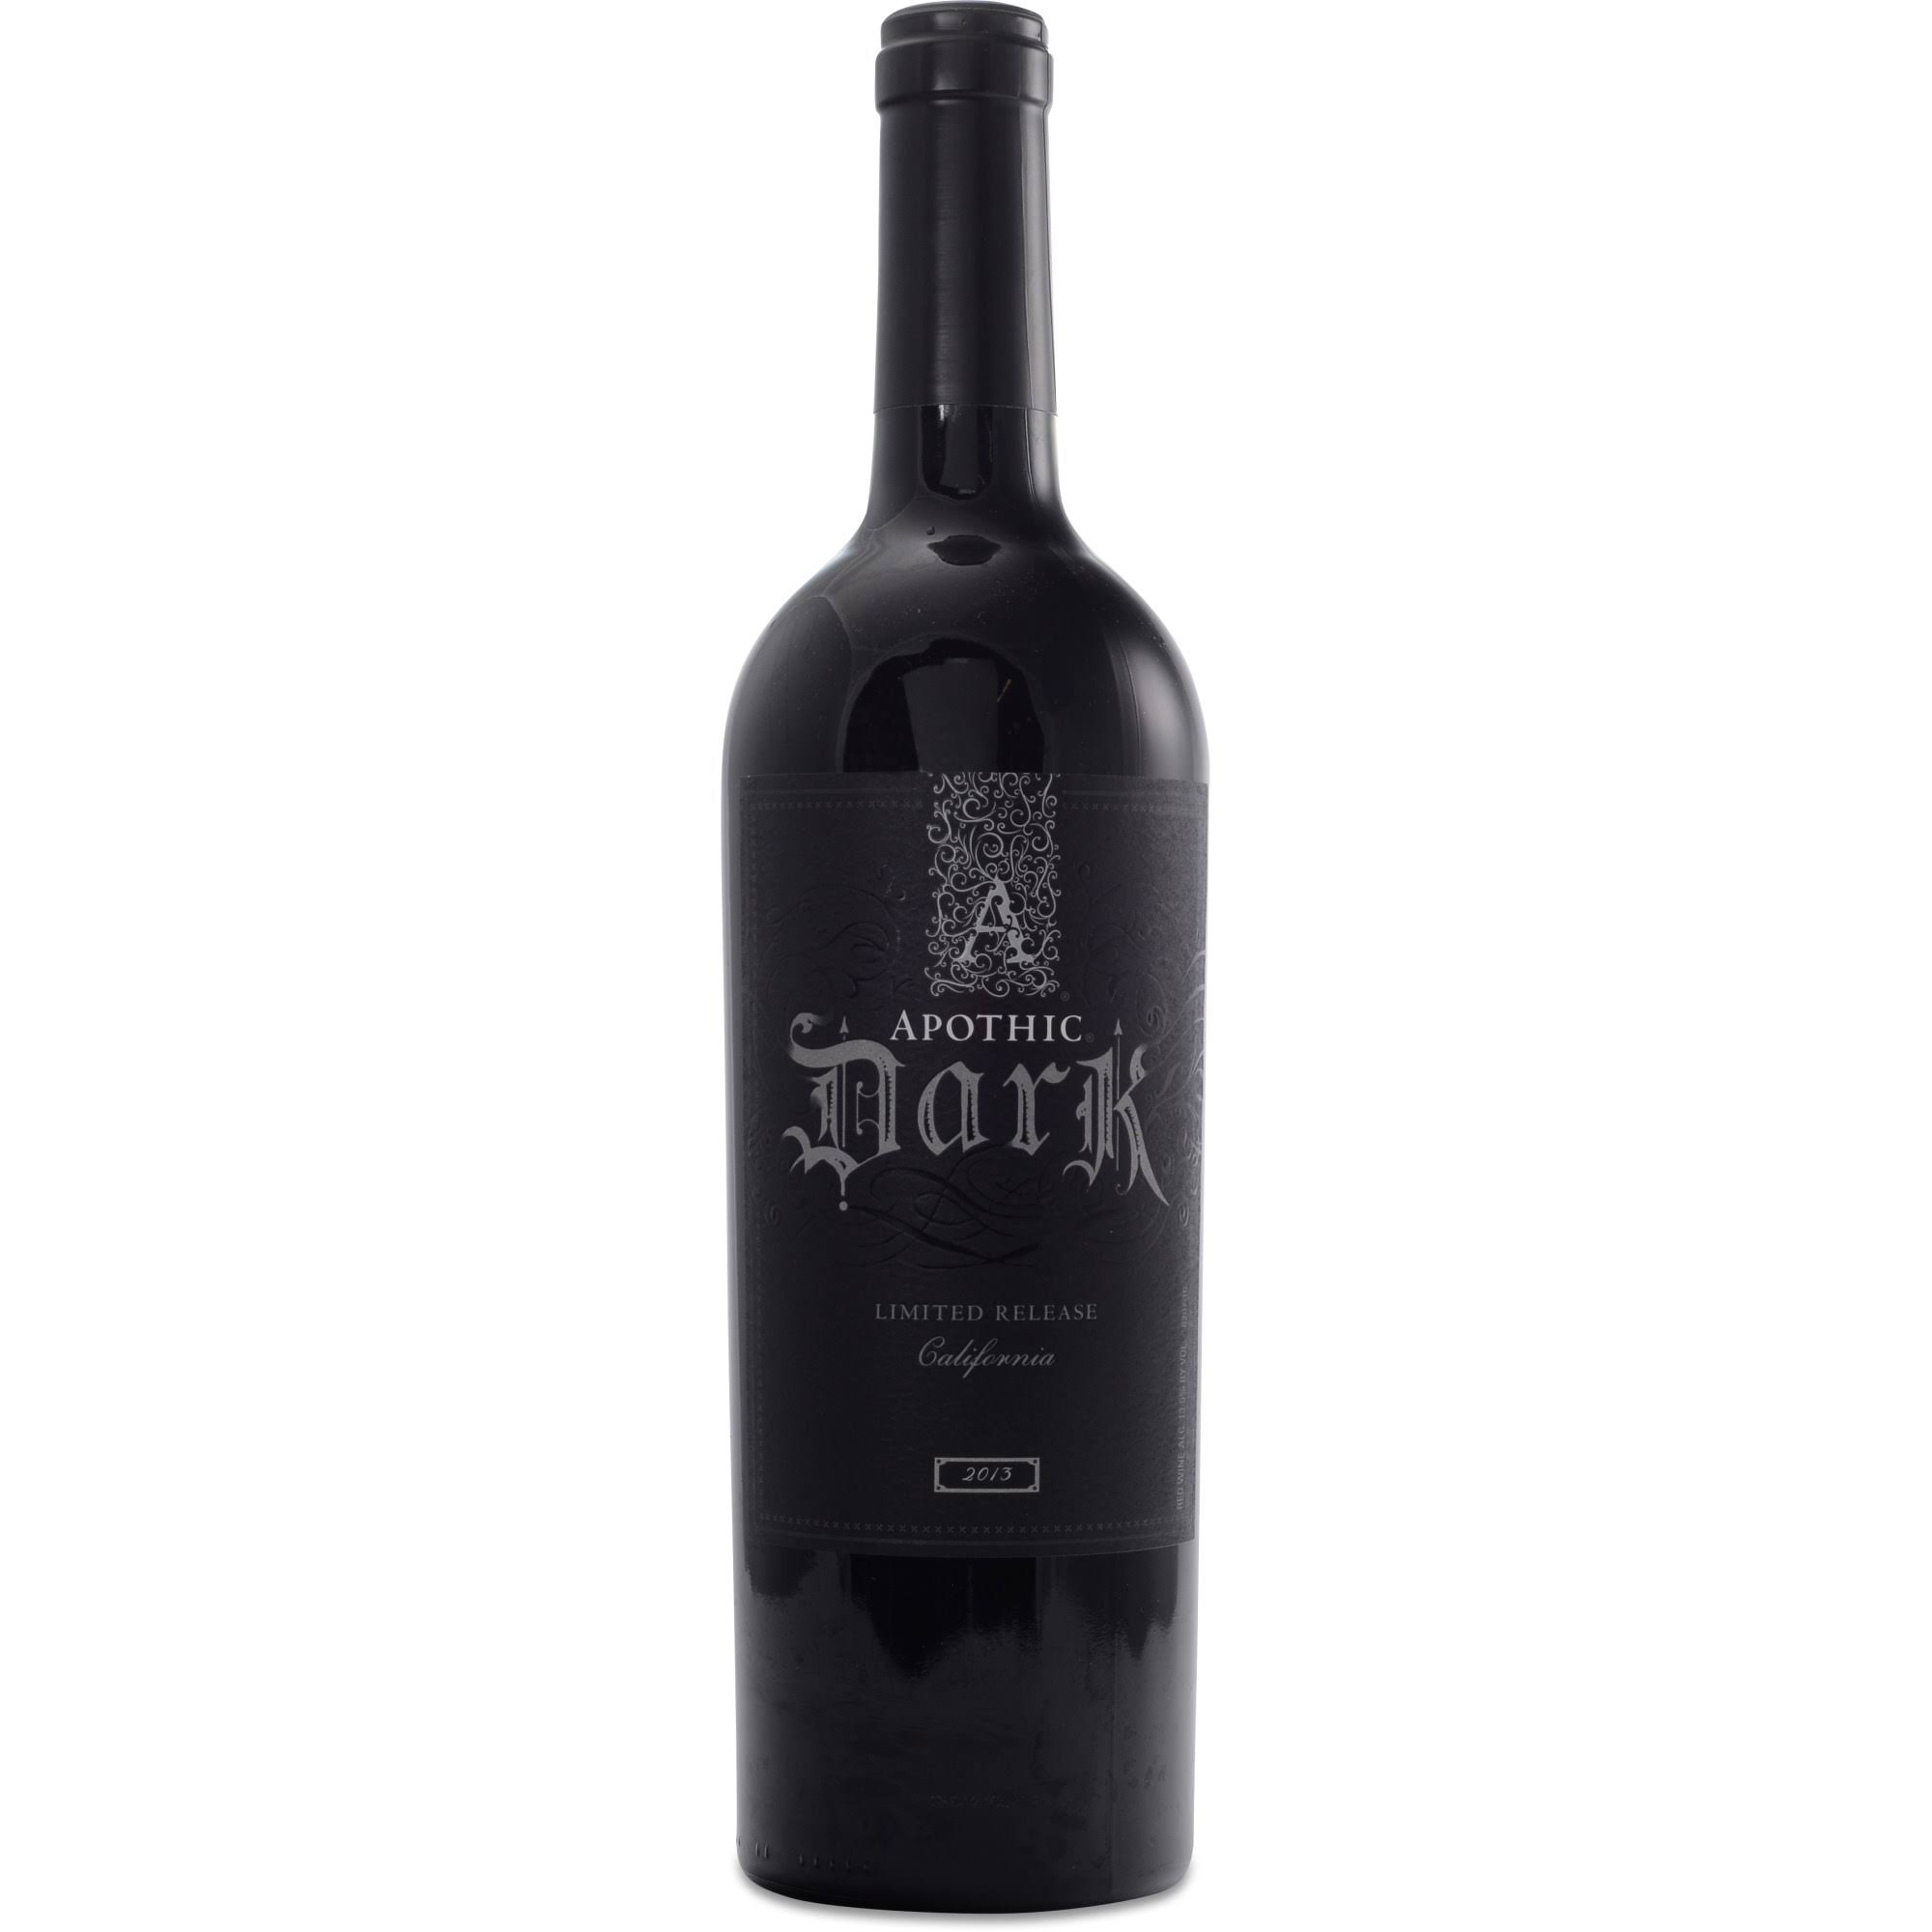 Apothic Dark Red Blend - California